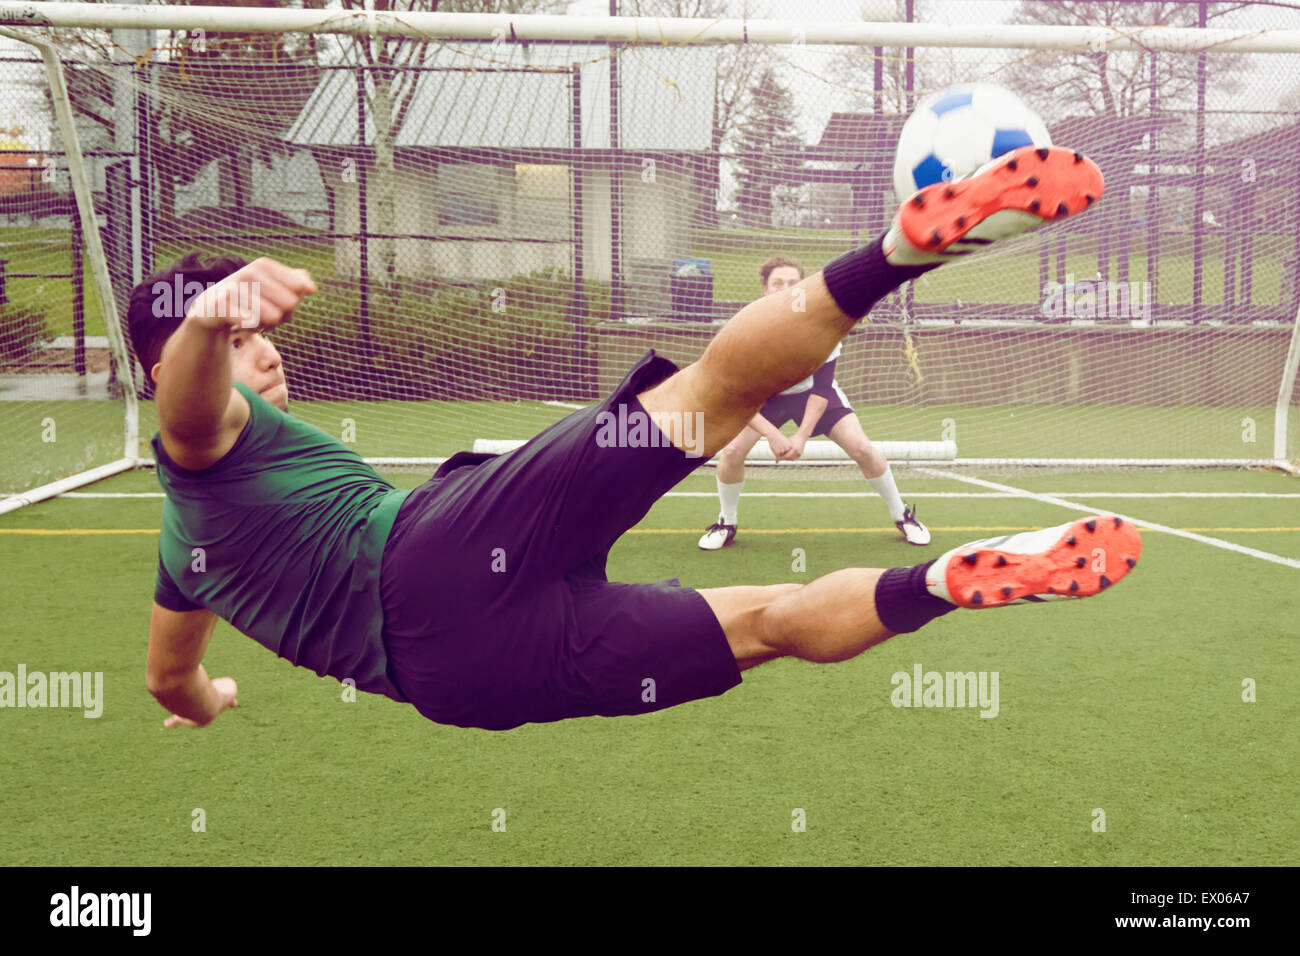 Young male soccer player kicking ball toward goal - Stock Image